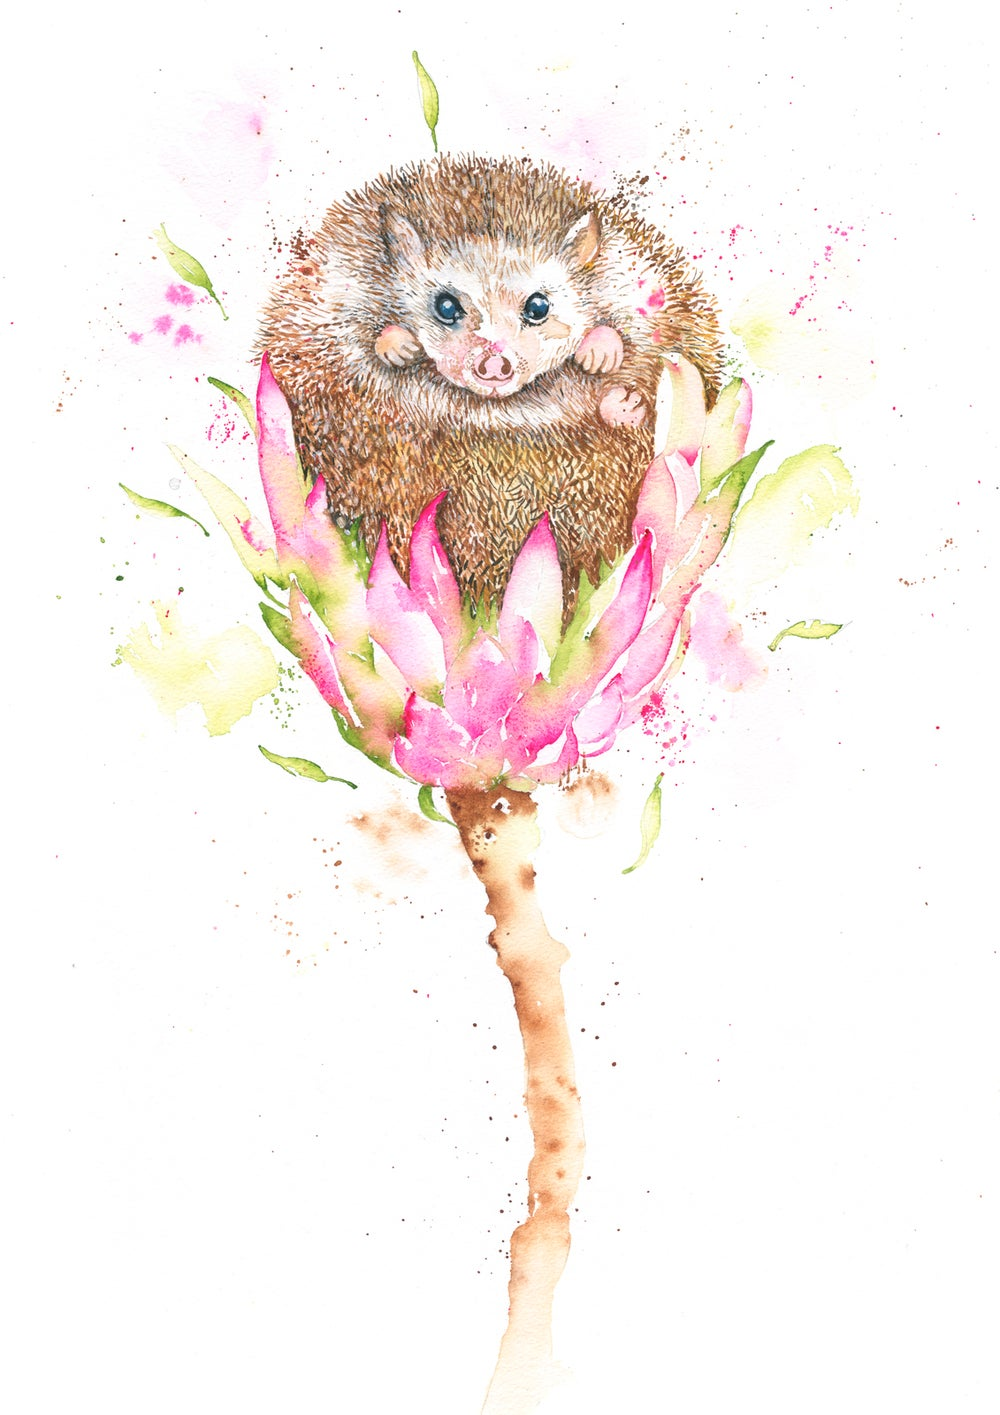 Image of Henry, the cute baby Hedgehog with FREE SHIPPING